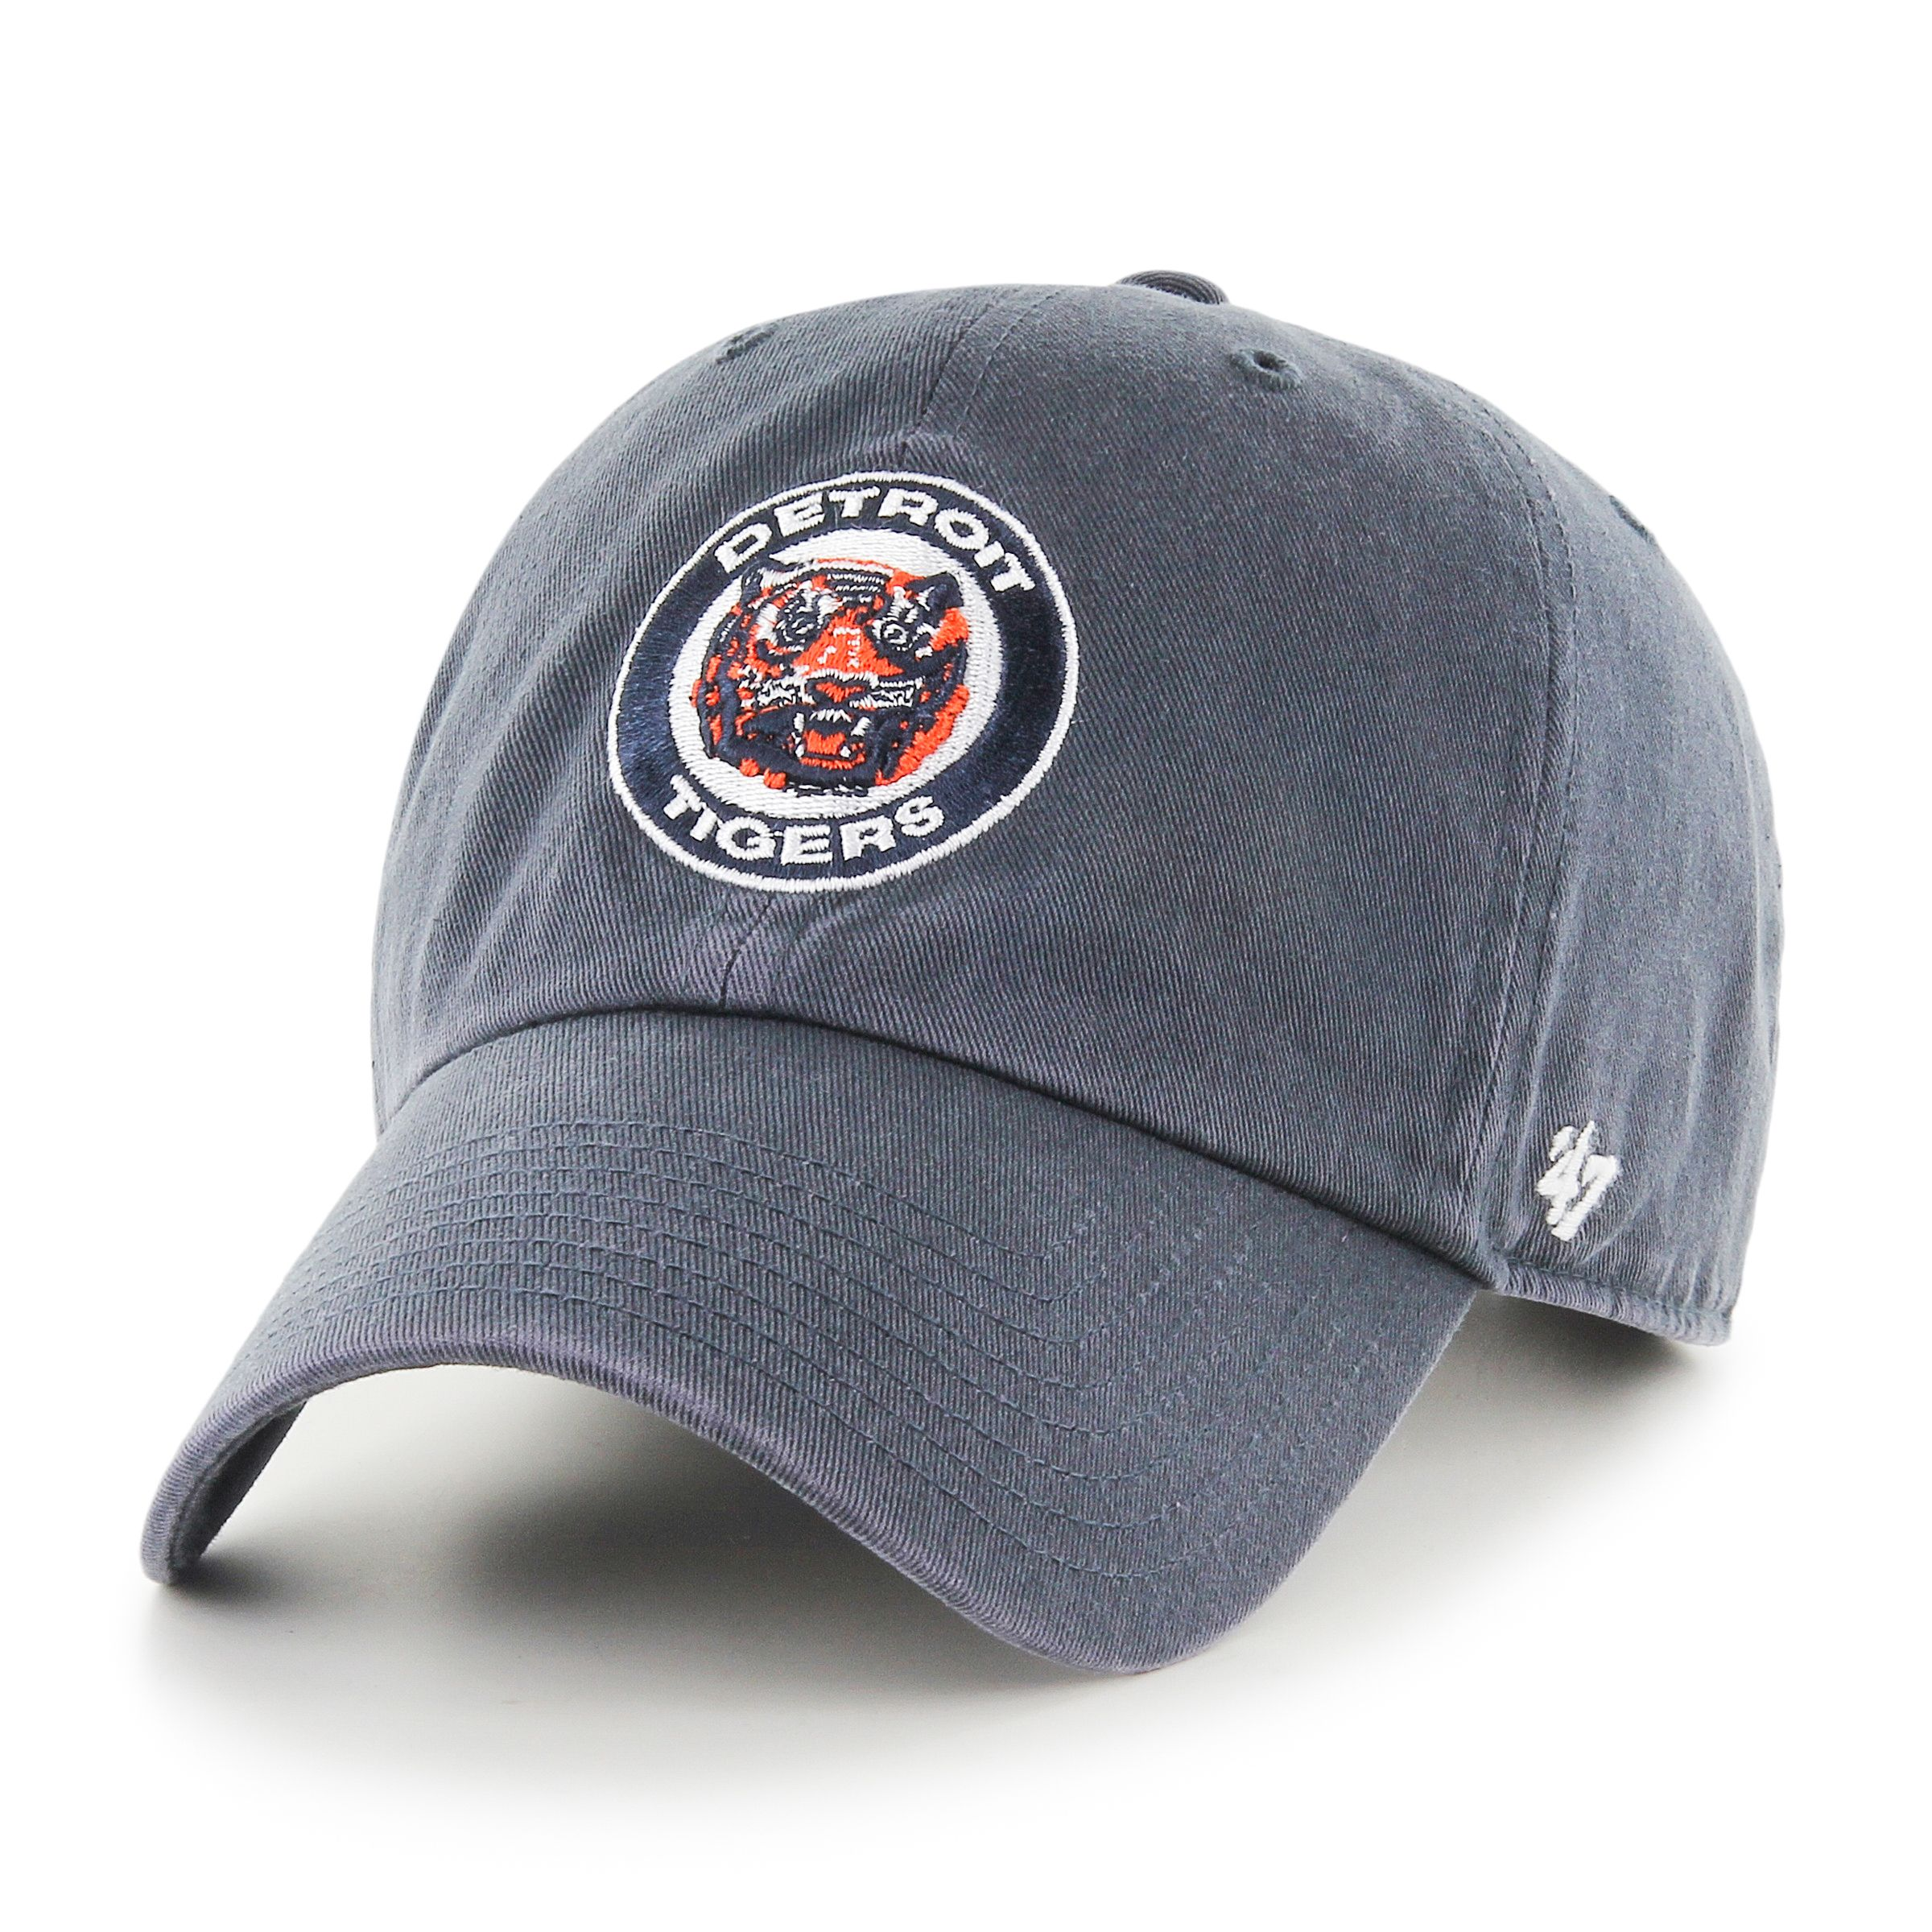 a82dba246ec7b Detroit Tigers 47 Brand Vintage Classic Clean Up Adjustable Hat - Low  Prices   Quick Shipping at Detroit Game Gear